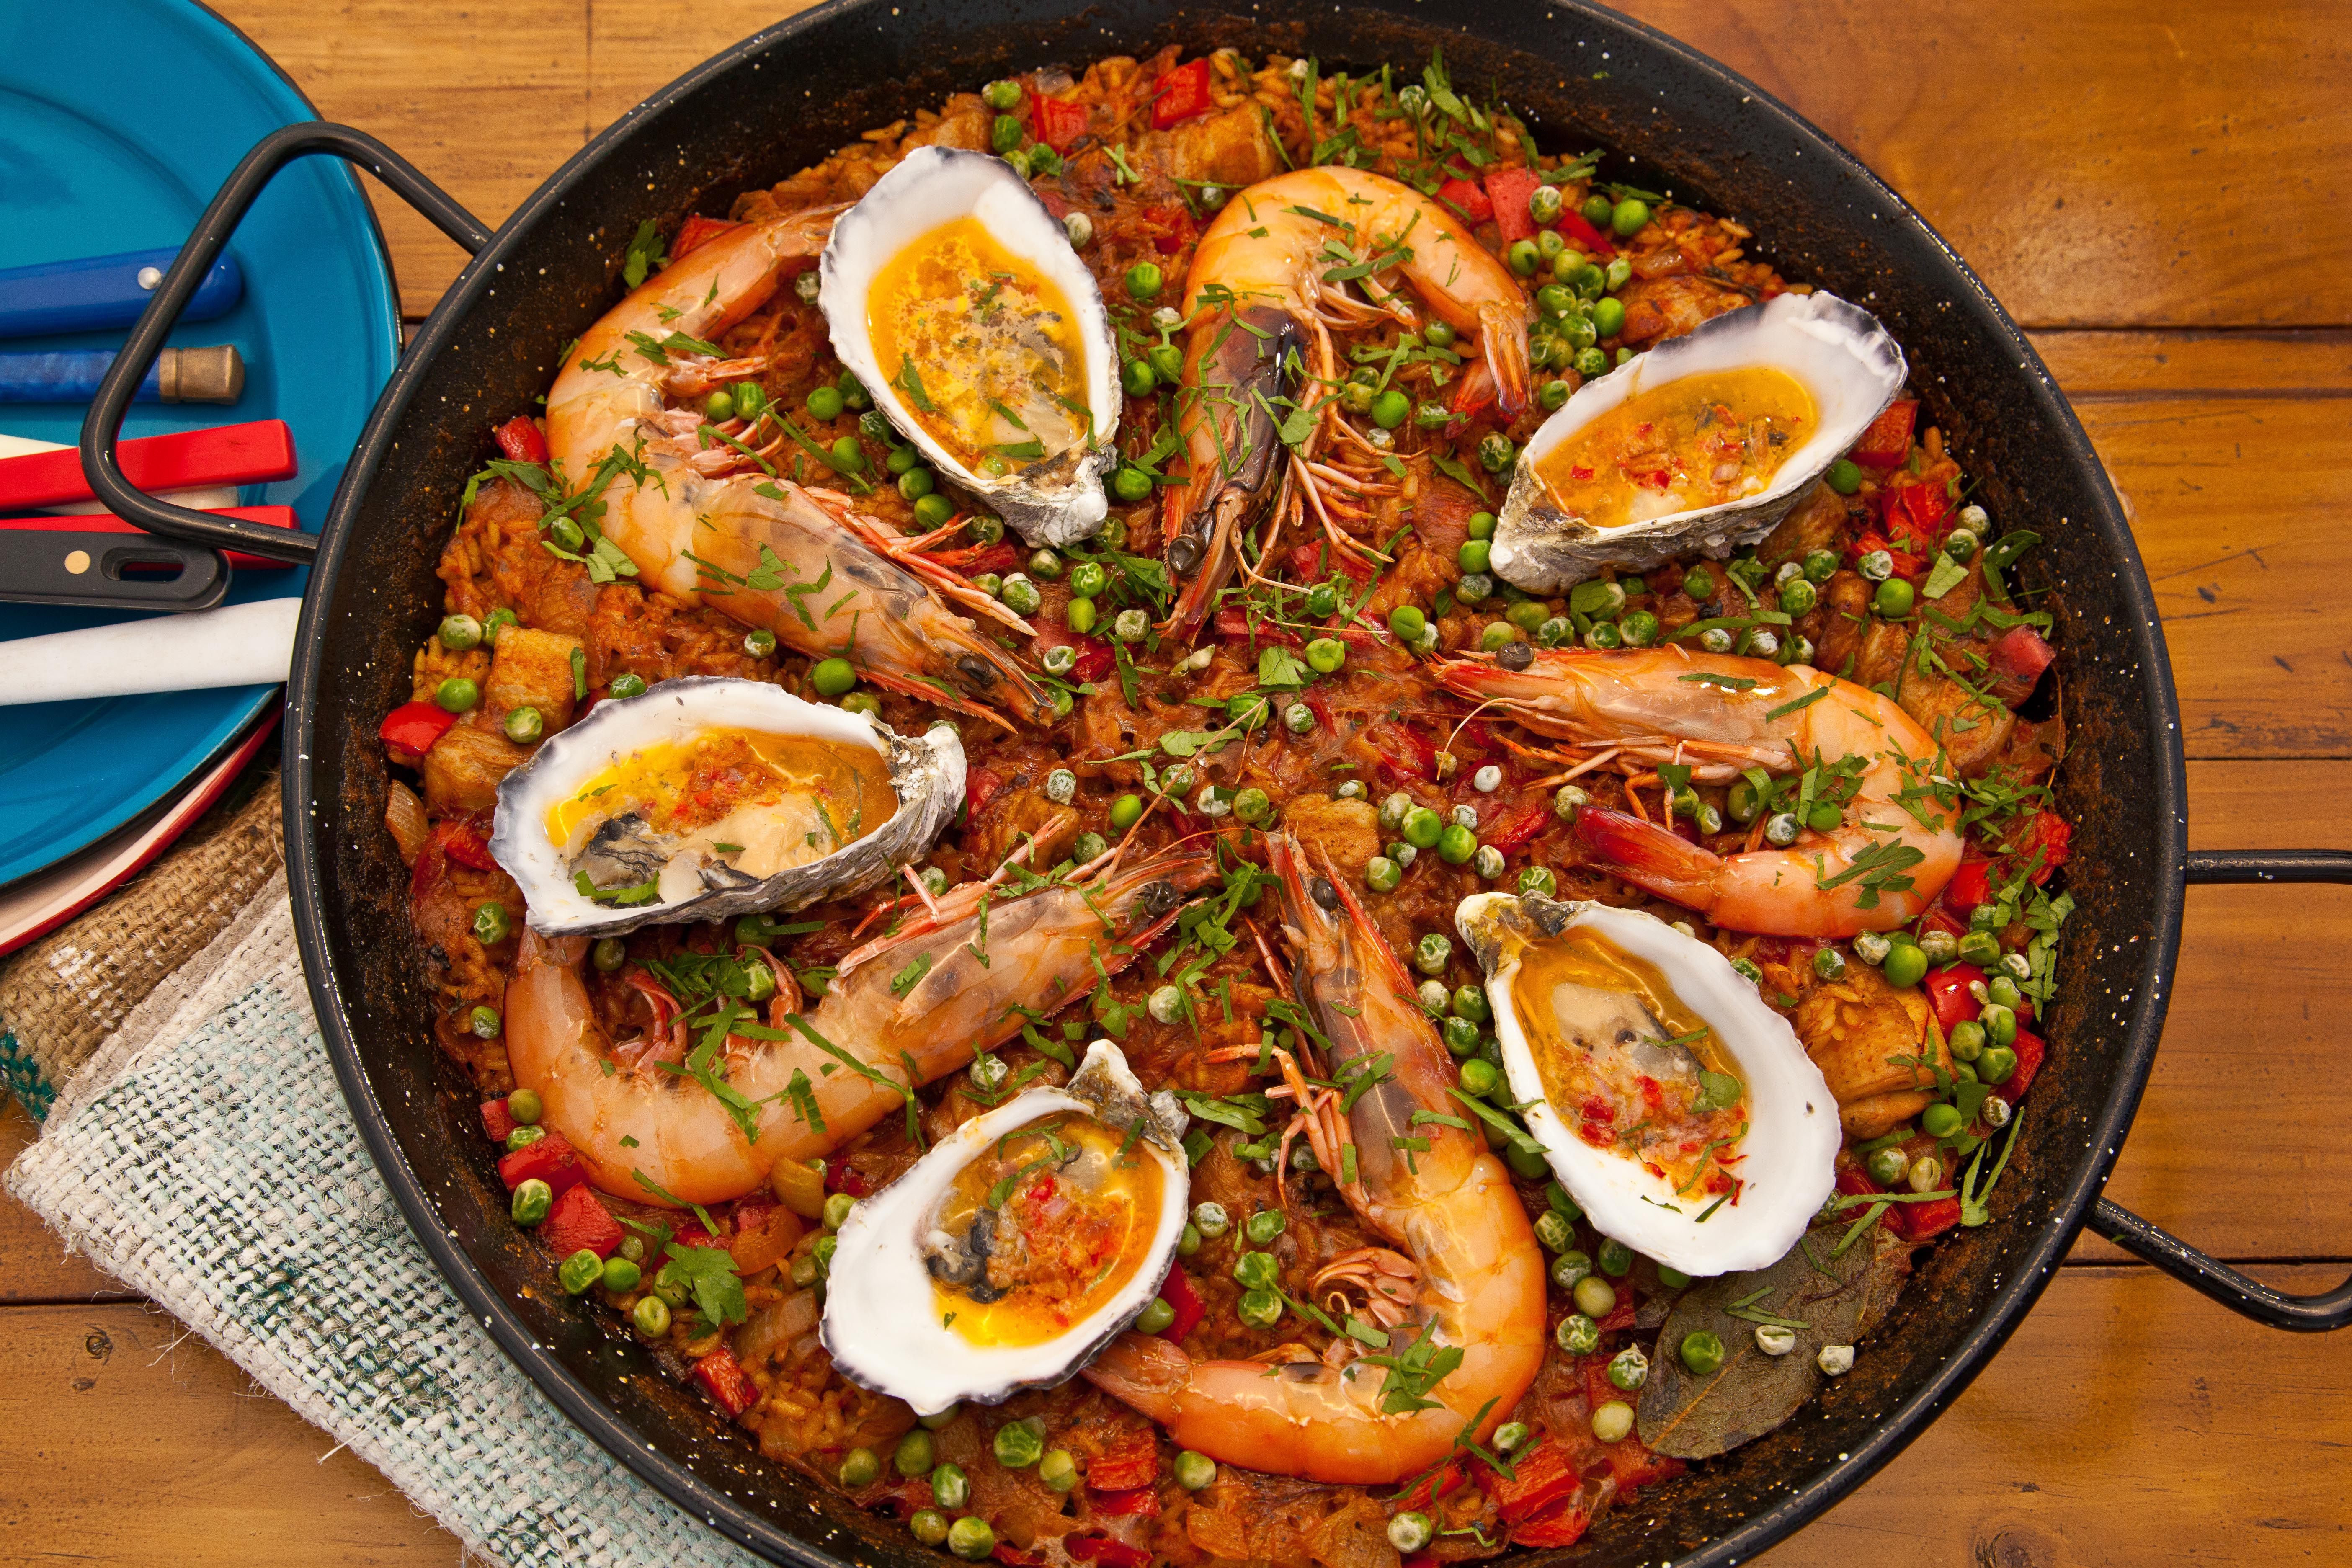 Pacific paella food pinterest paella barley grain and risotto spanish recipes and spanish food sbs food forumfinder Images